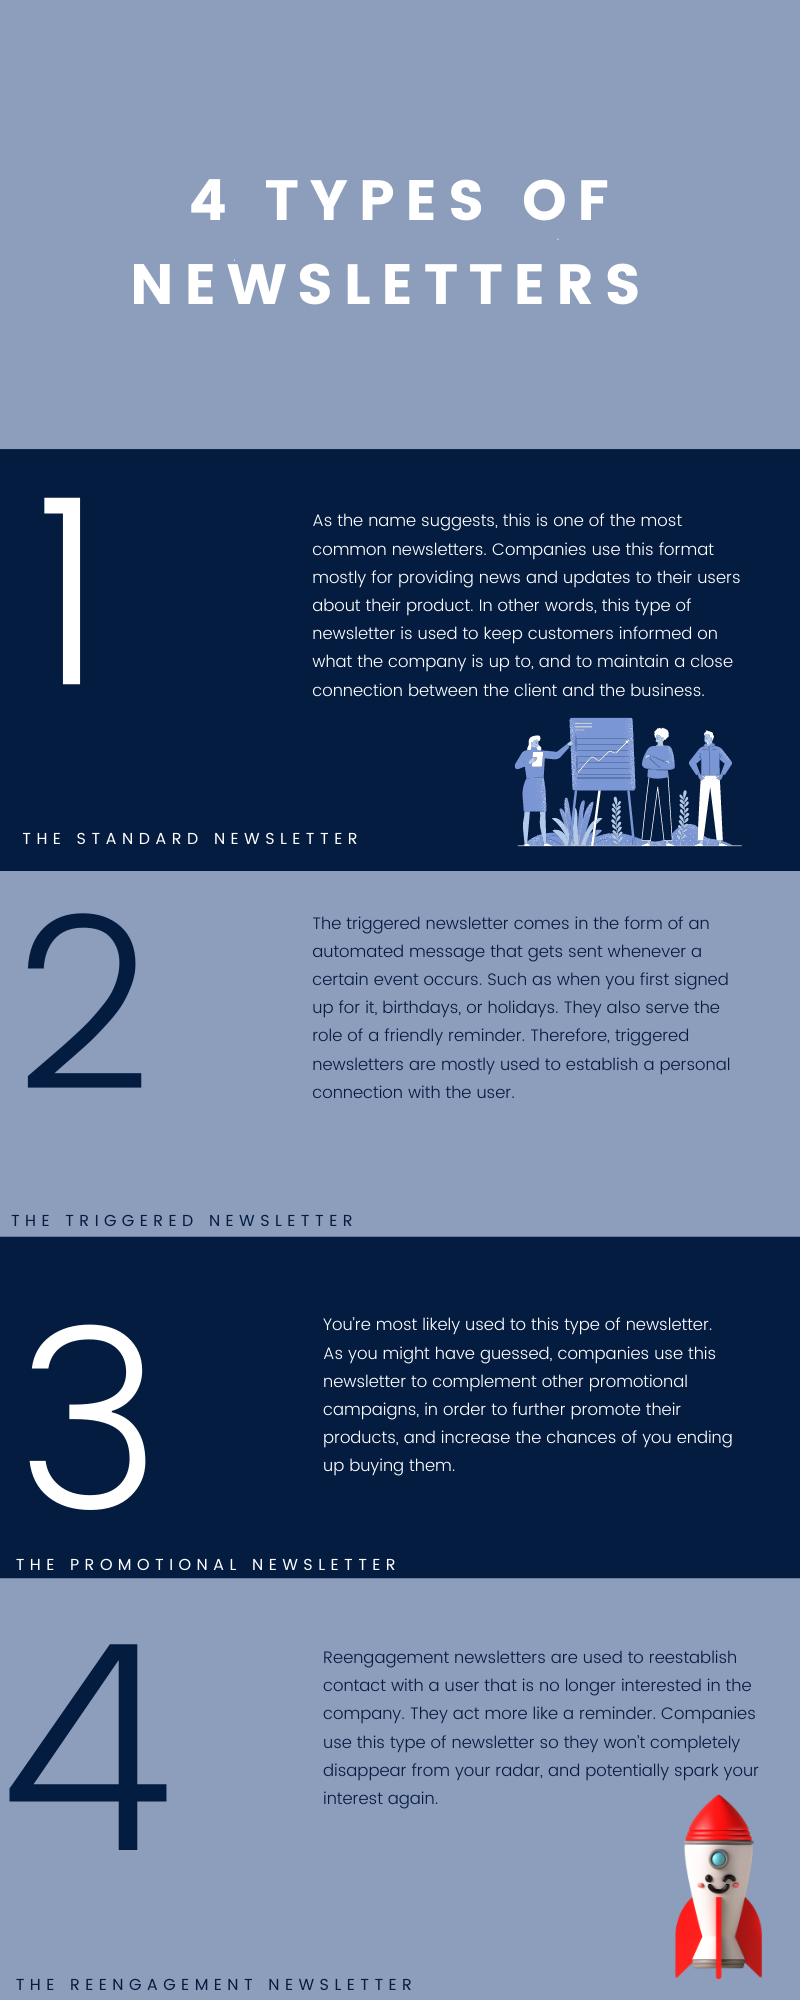 4 Types Of Newsletters -Infographic by Swell Country